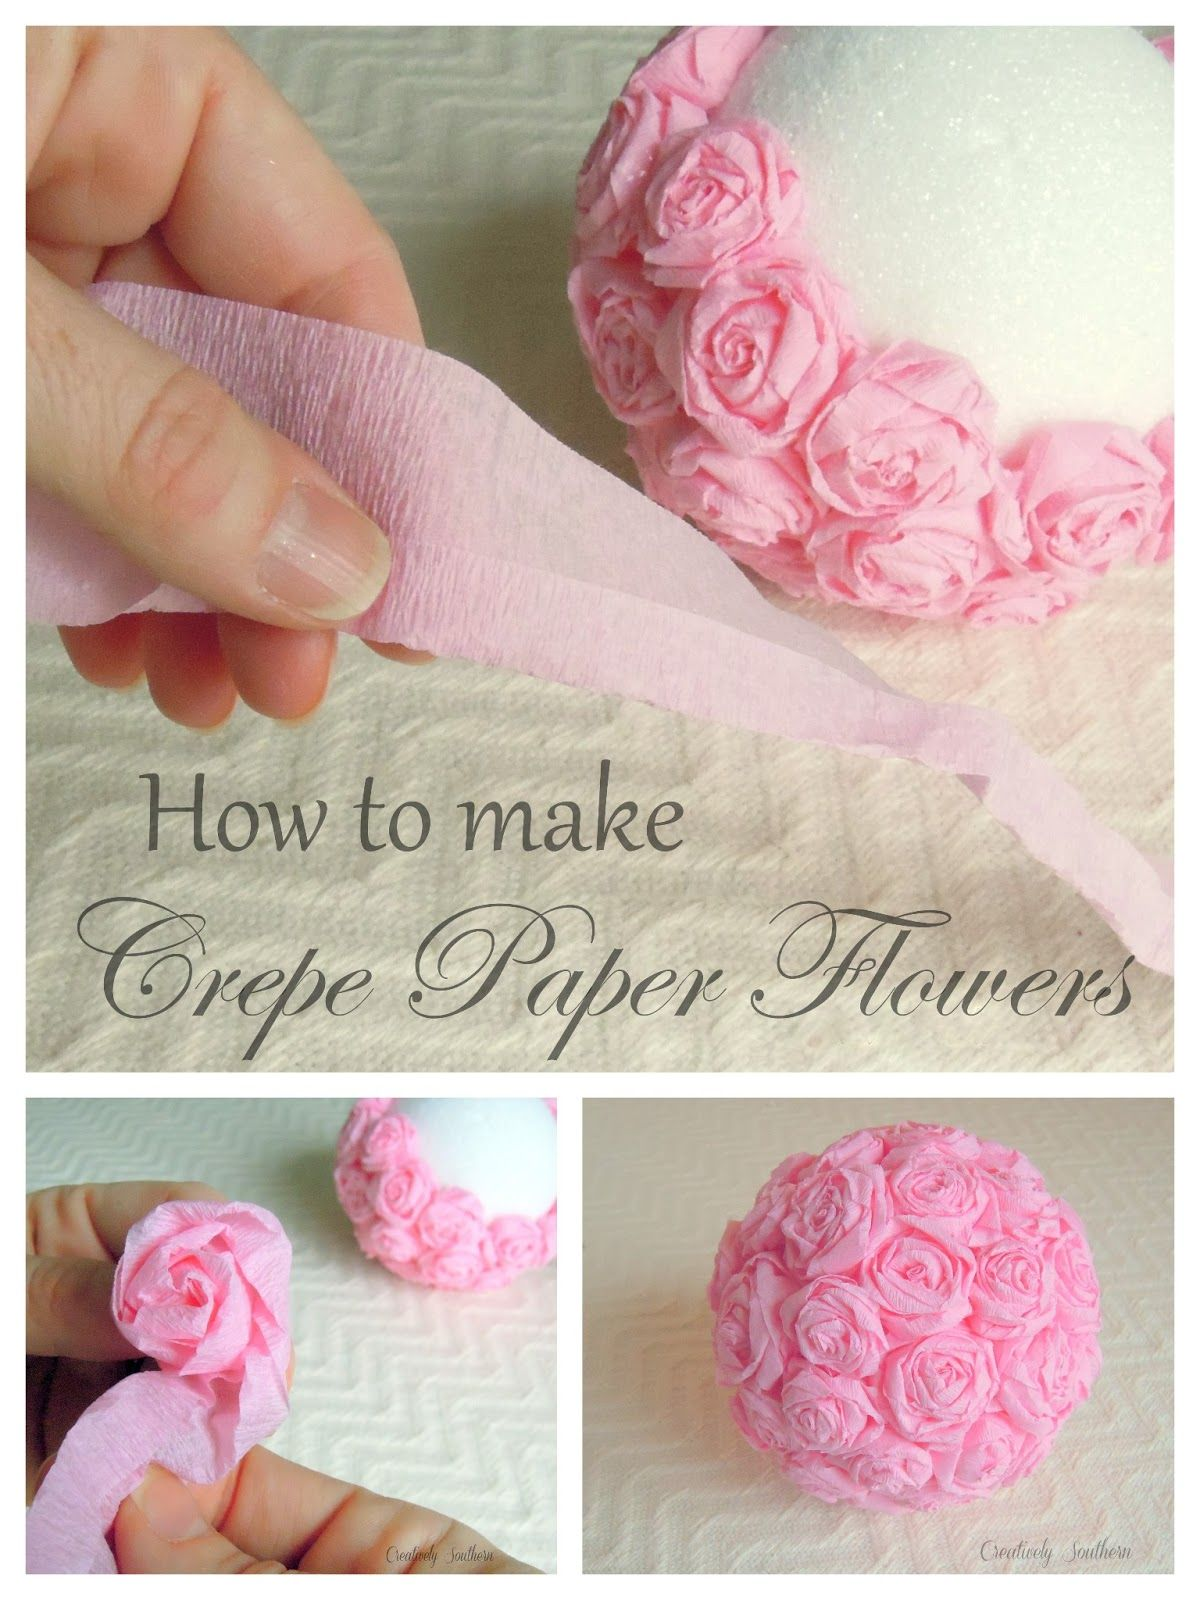 Crepe Paper Flowers Craft Idea Craft Ideas Pinterest Crepe